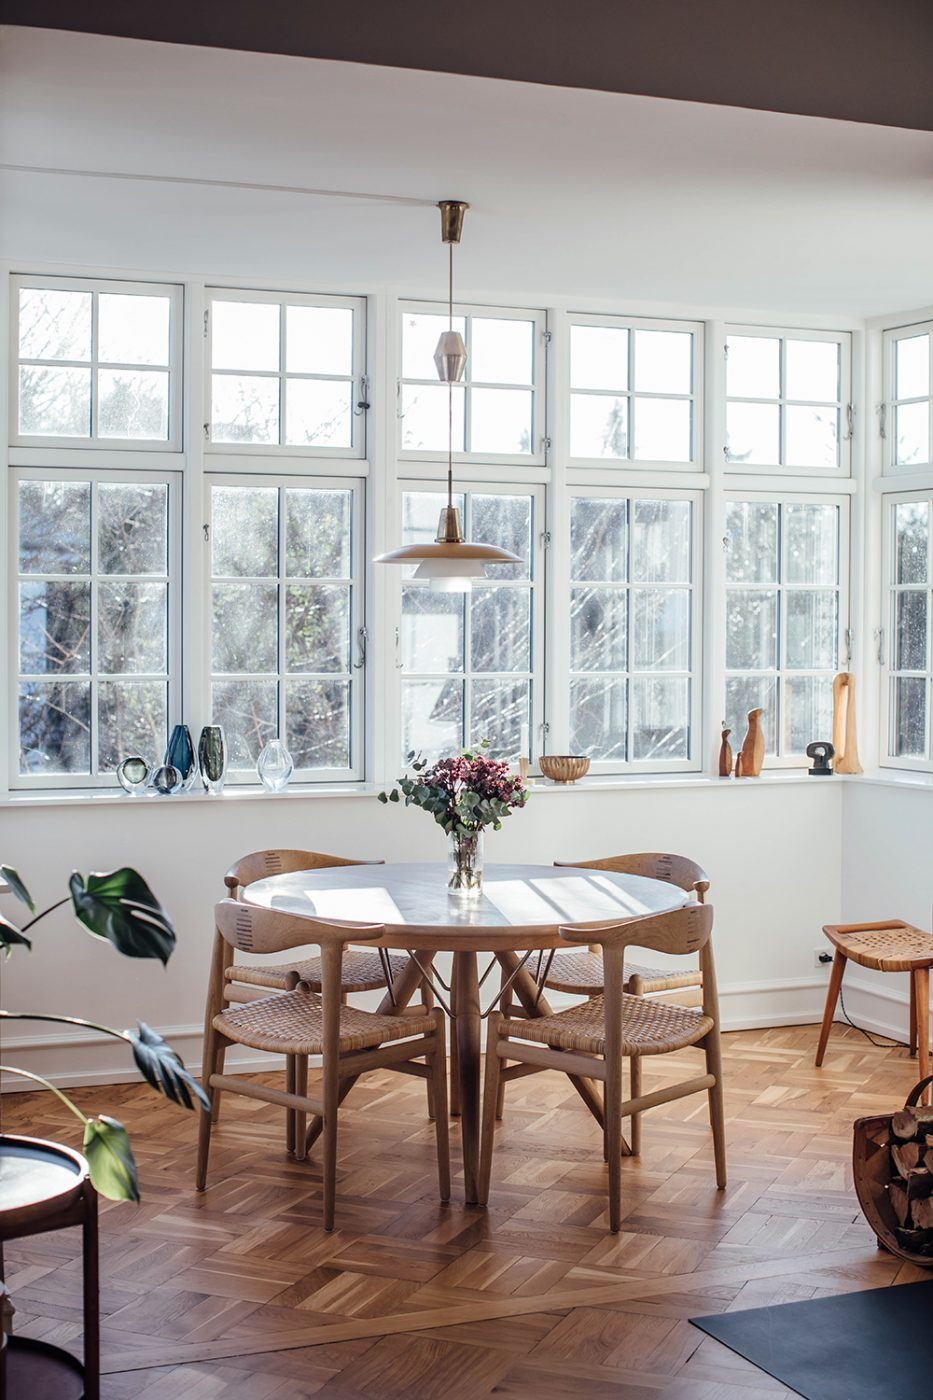 Image for Home Tour with Anders Forup in Copenhagen